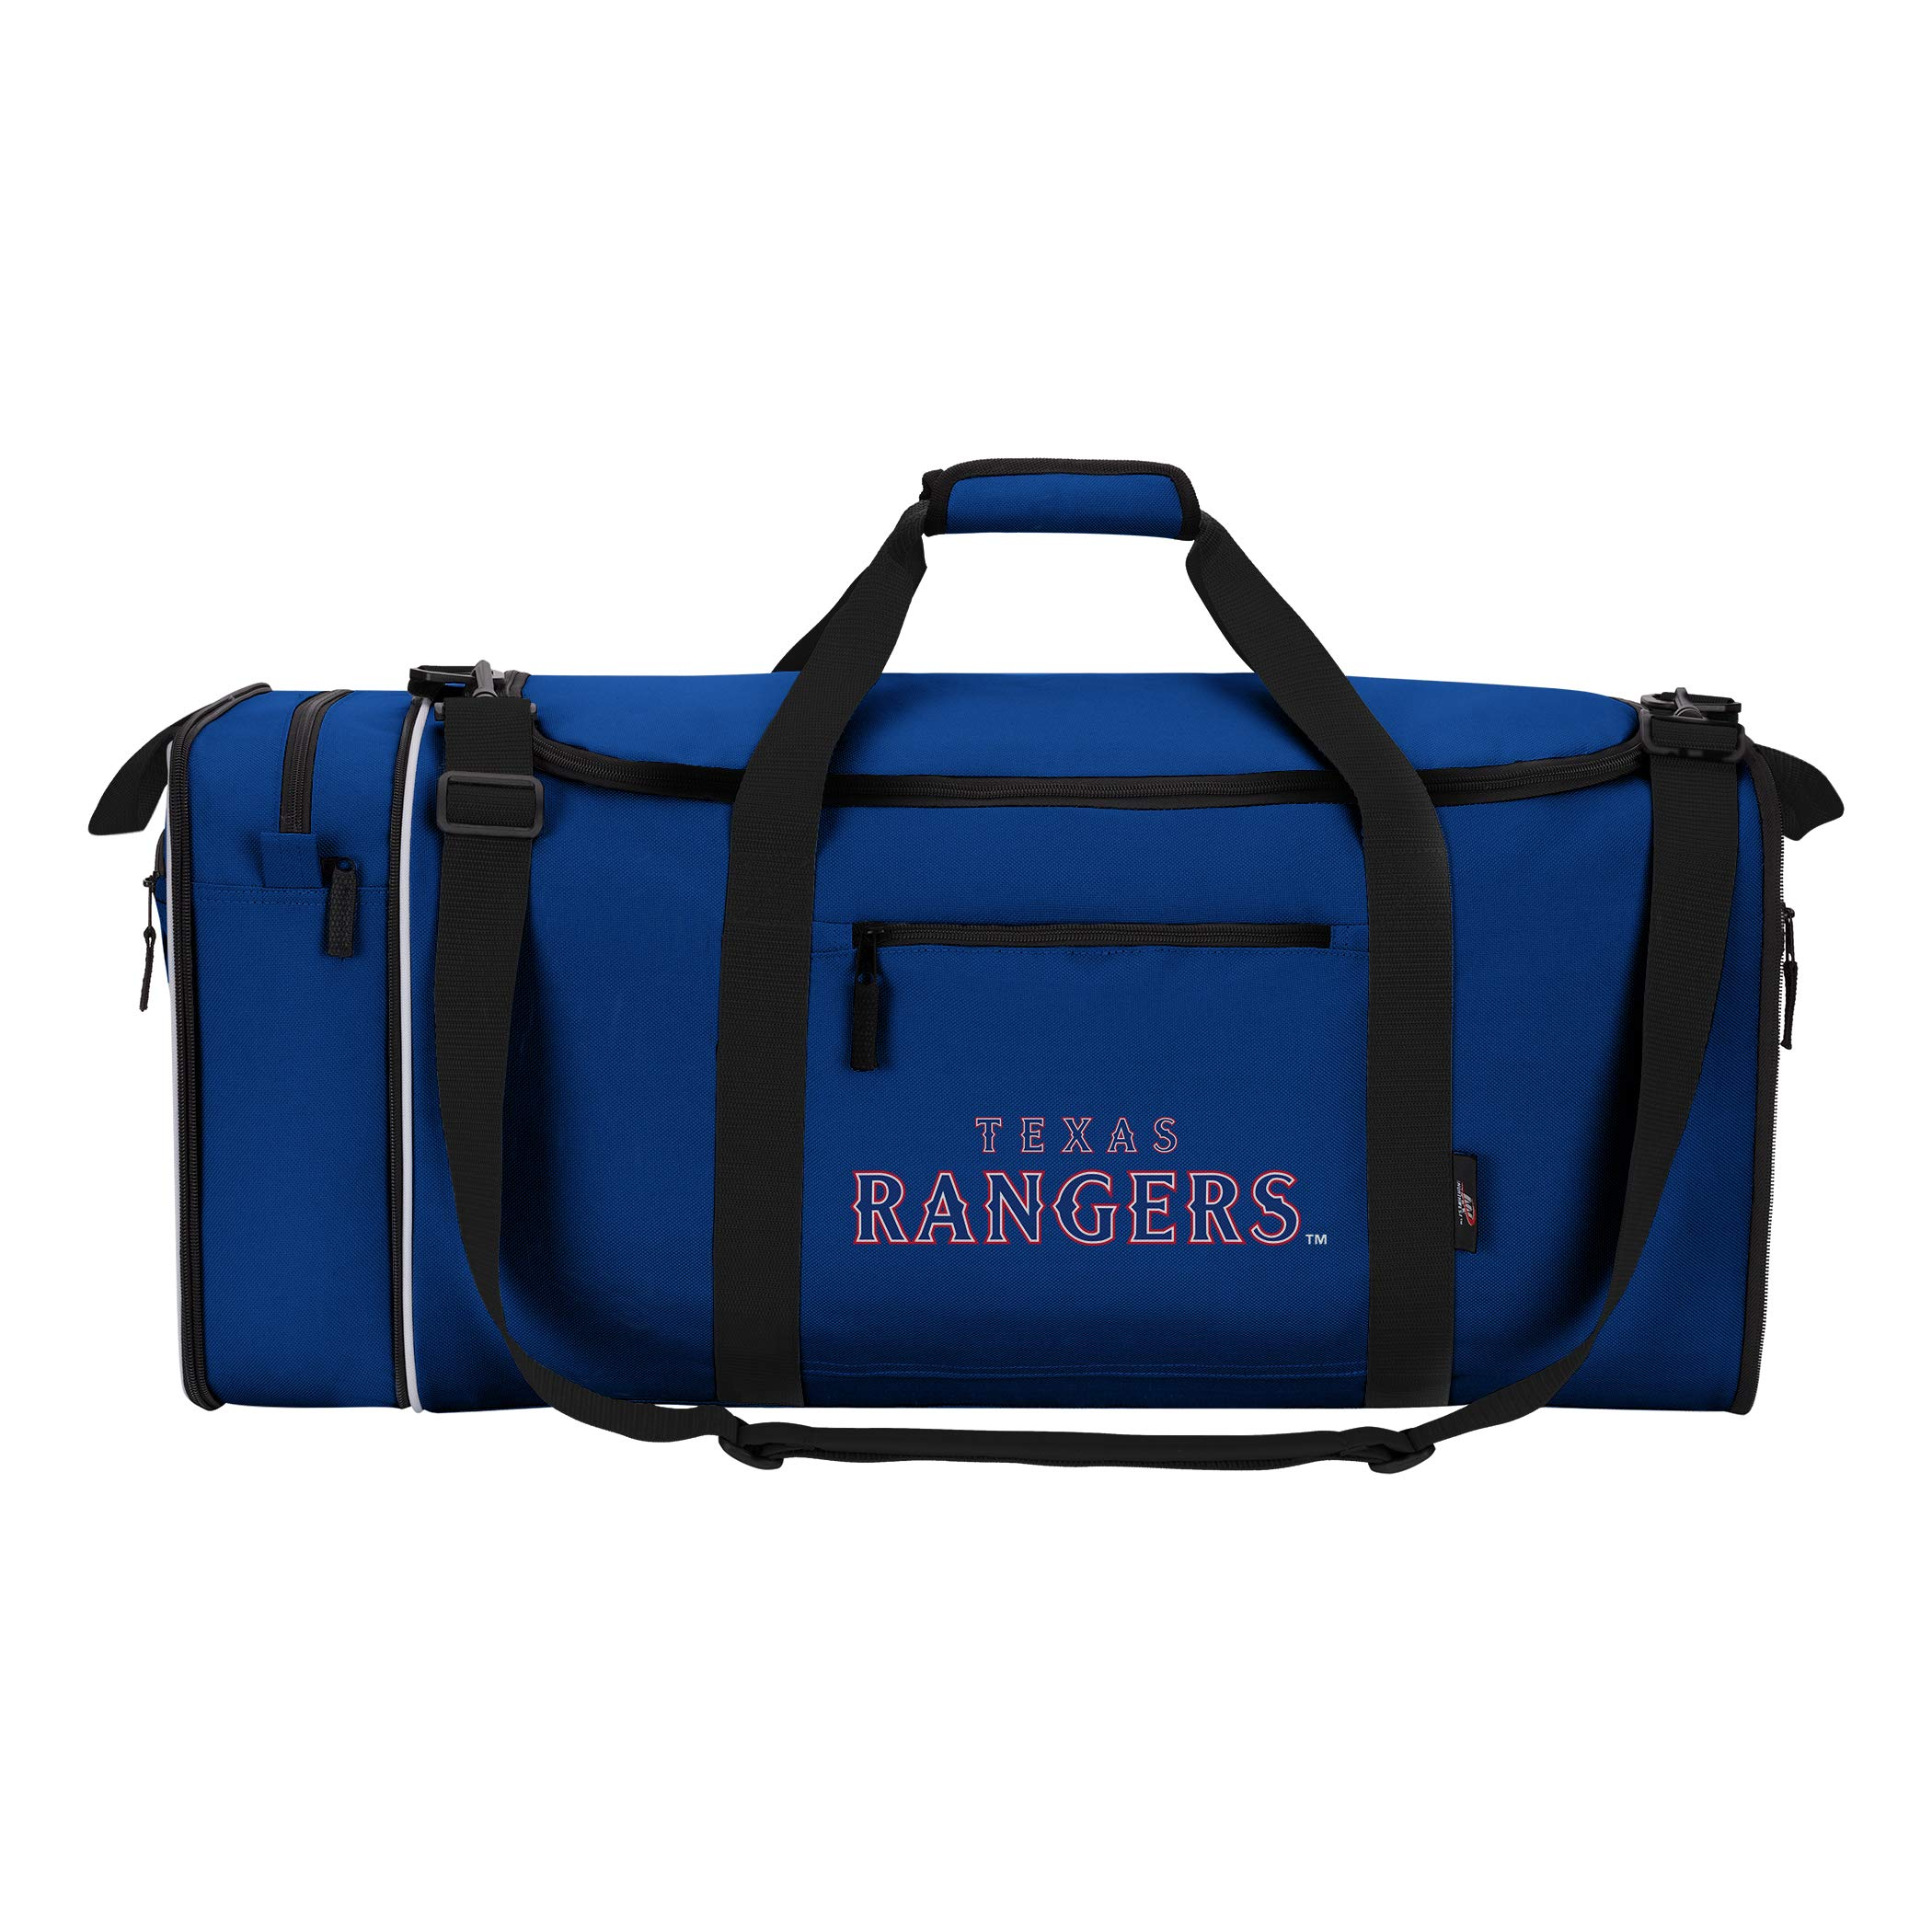 The Northwest Company Officially Licensed MLB Texas Rangers Steal Duffel Bag, 28'' x 11'' x 12''